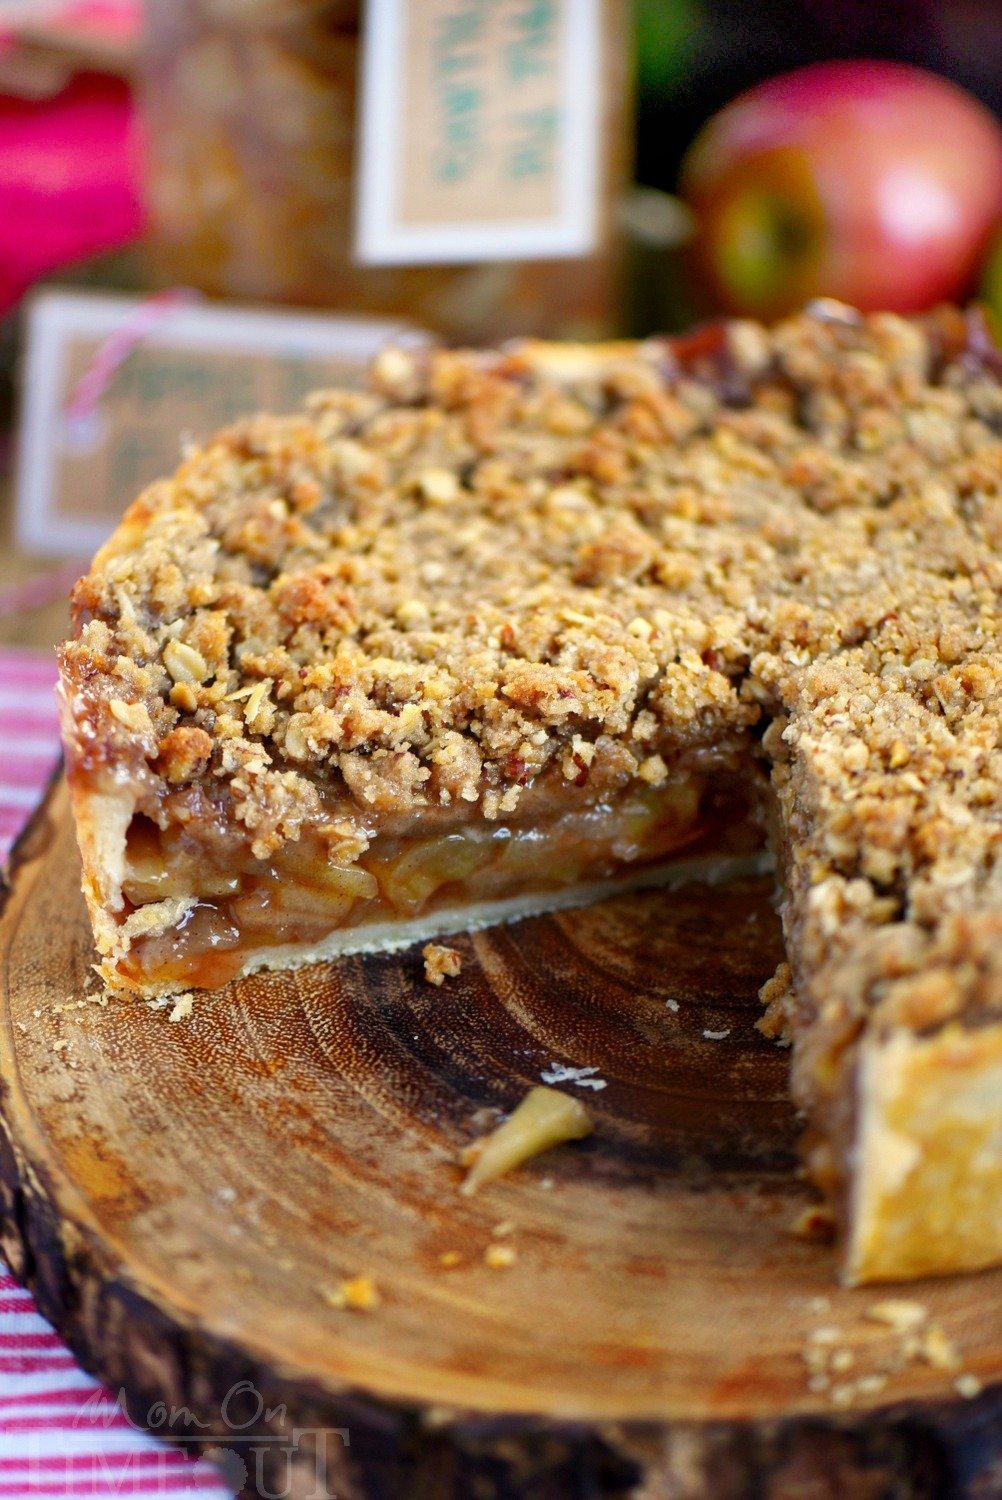 Deep Dish Dutch Apple Pie is loaded with a spiced apple filling and topped with a crunch, sweet, pecan streusel topping. Best served with a big scoop of vanilla ice cream and caramel sauce. This is THE dessert for the fall season! | Mom On Timeout